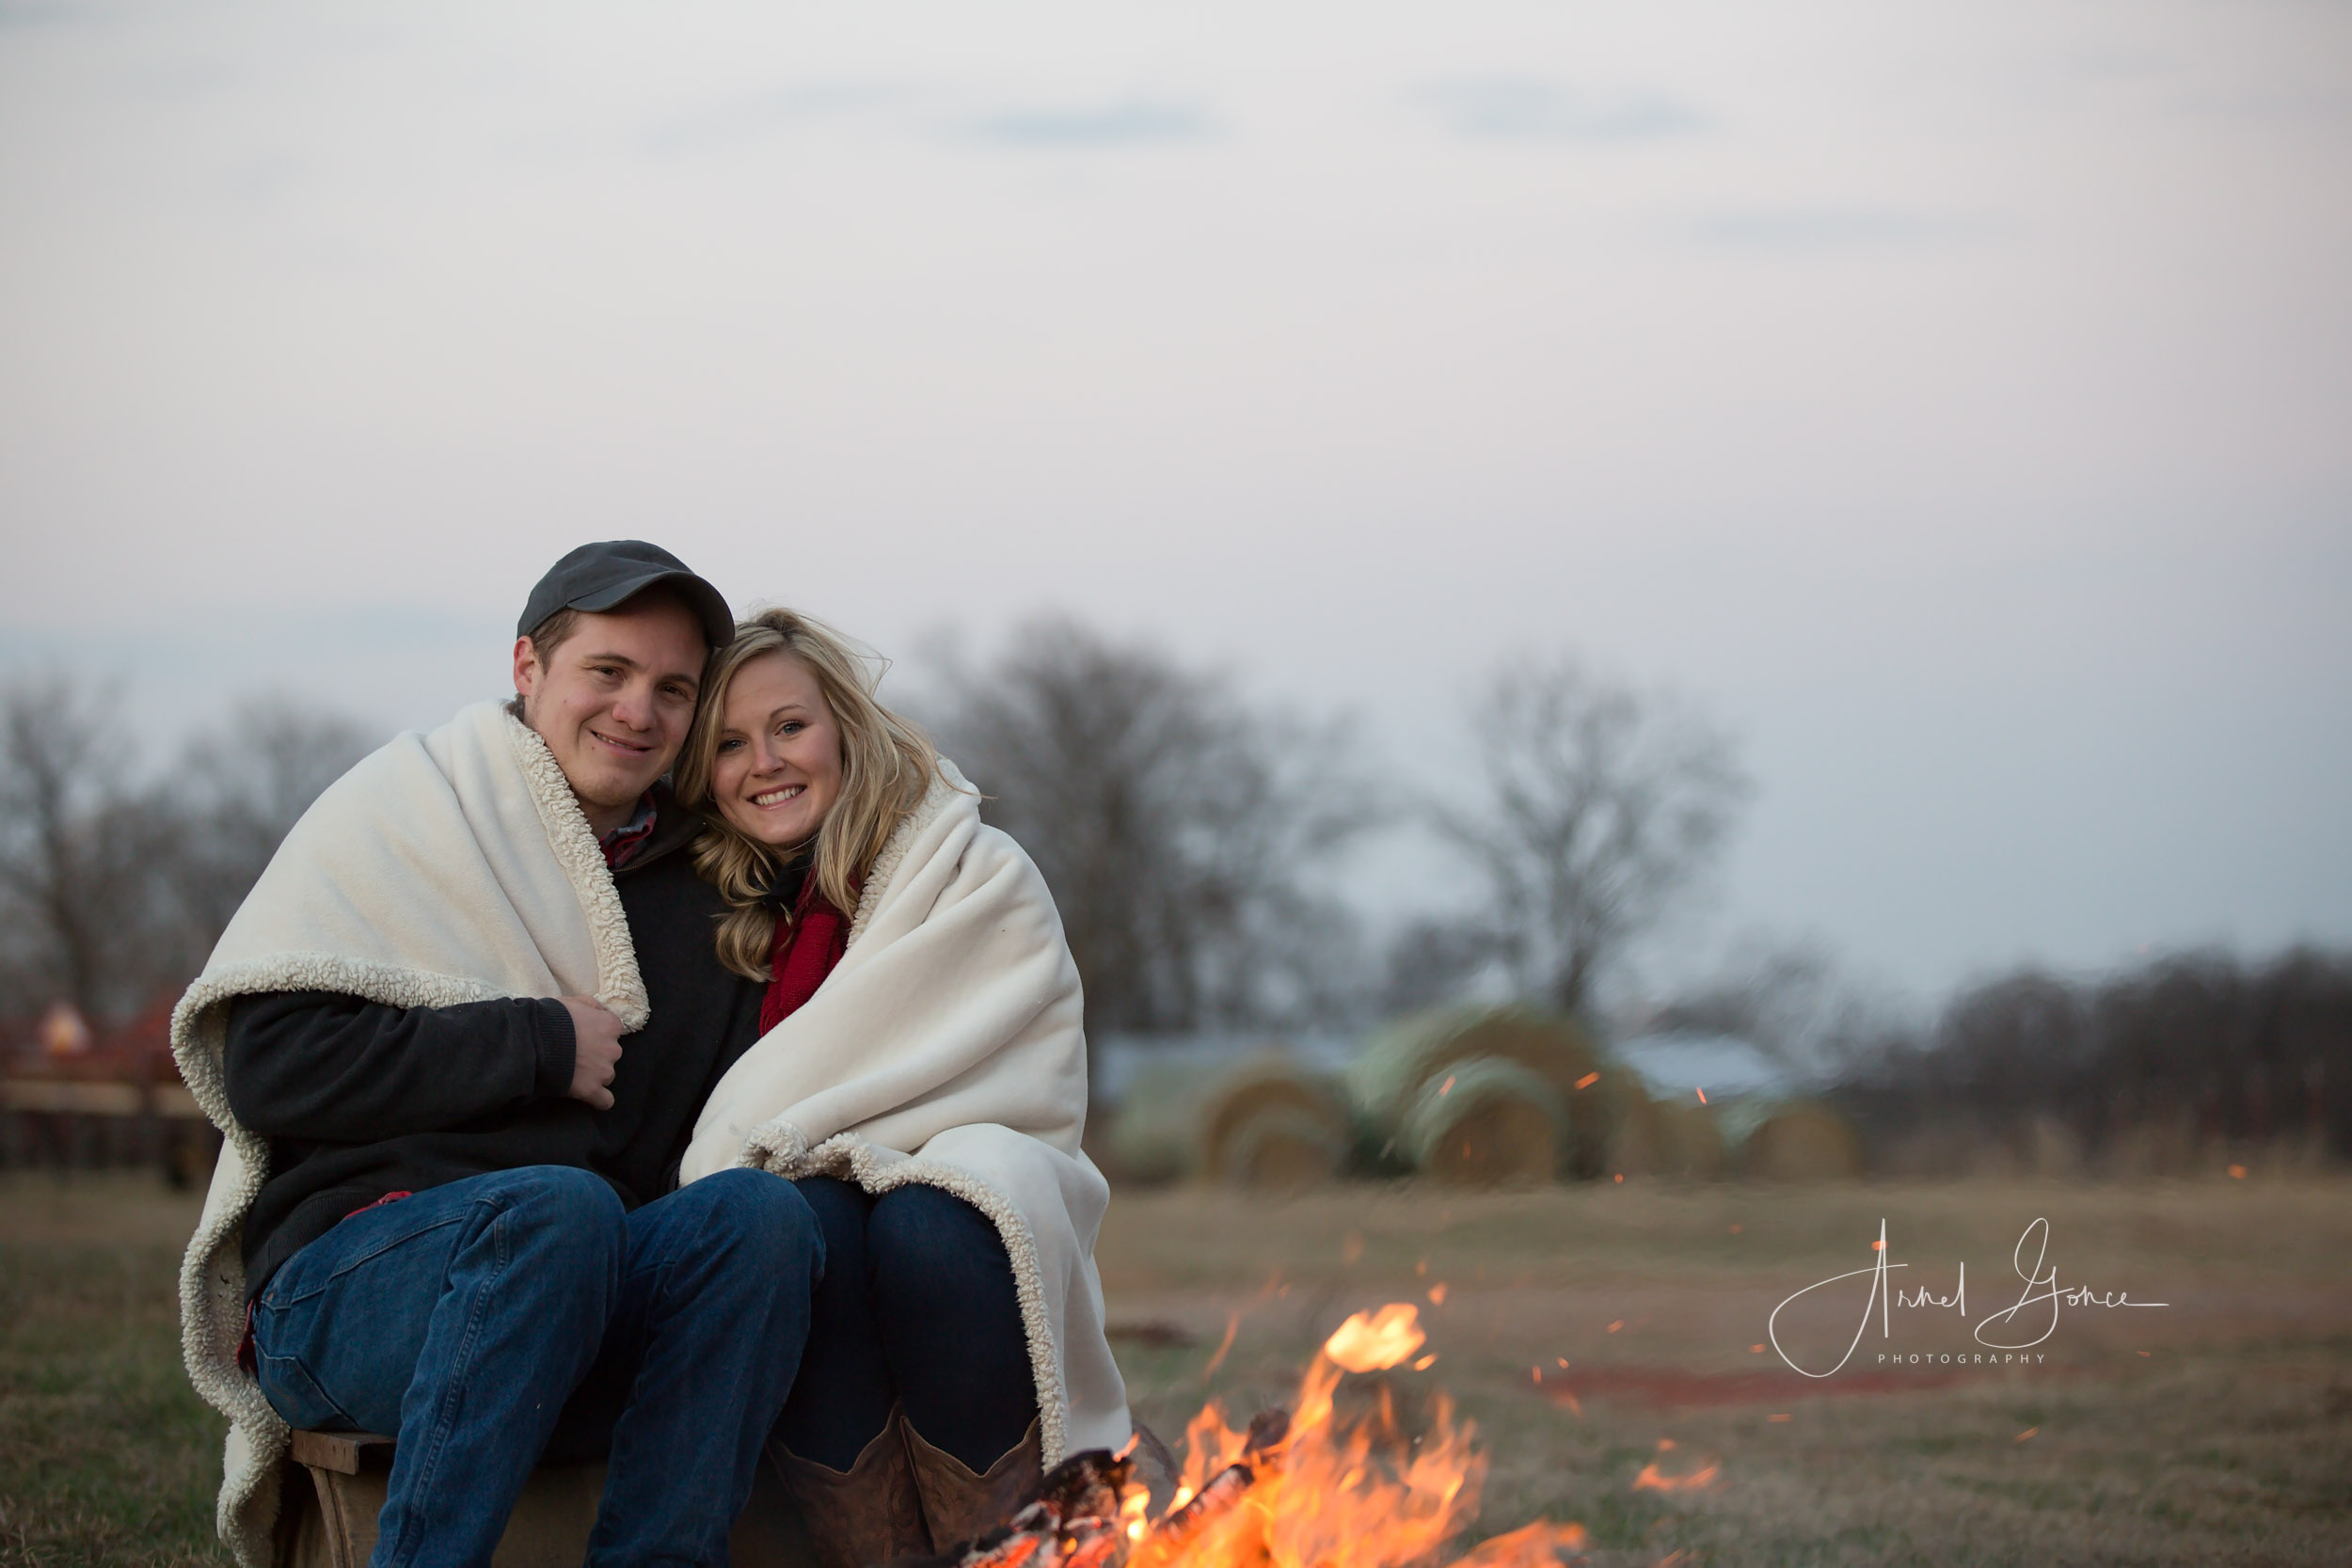 Couple snuggles under a blanket at a campfire for the last image of the engagement portrait session.